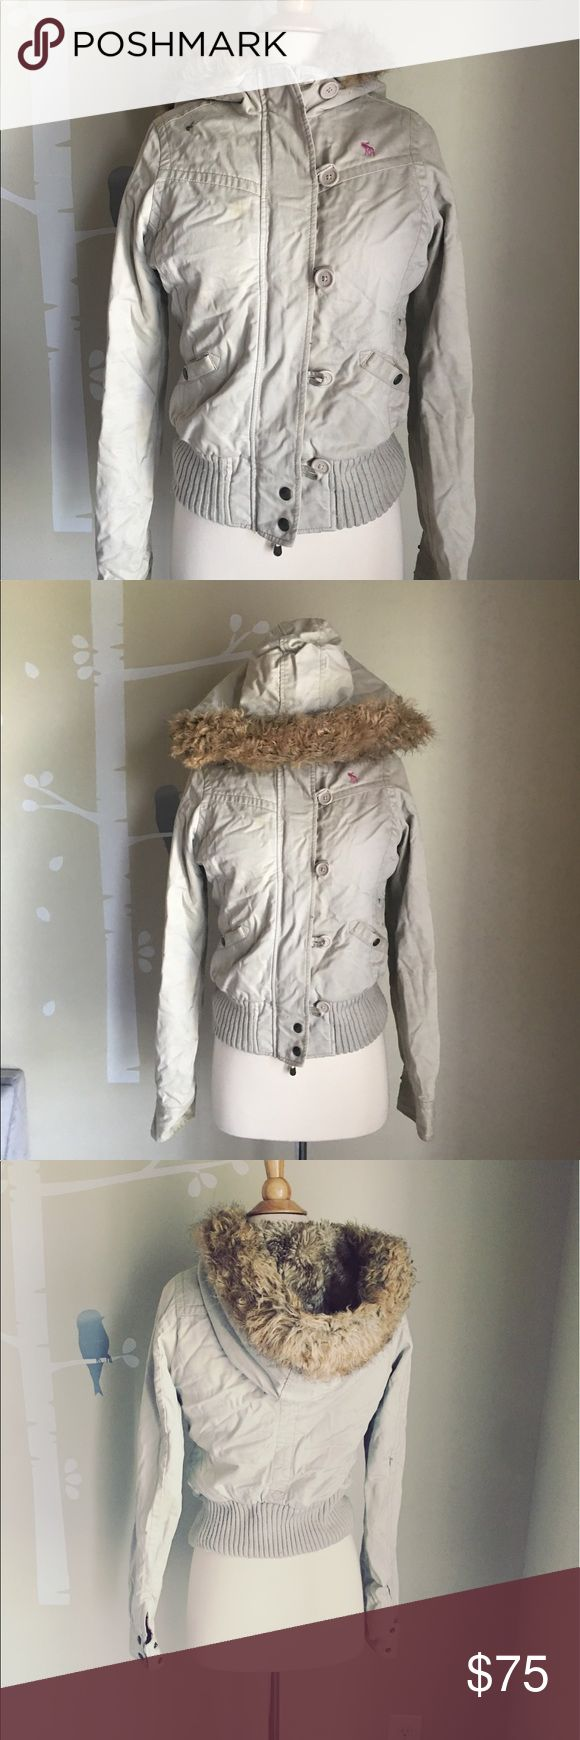 Abercrombie Kids winter jacket Excellent used condition Abercrombie & Fitch Jackets & Coats